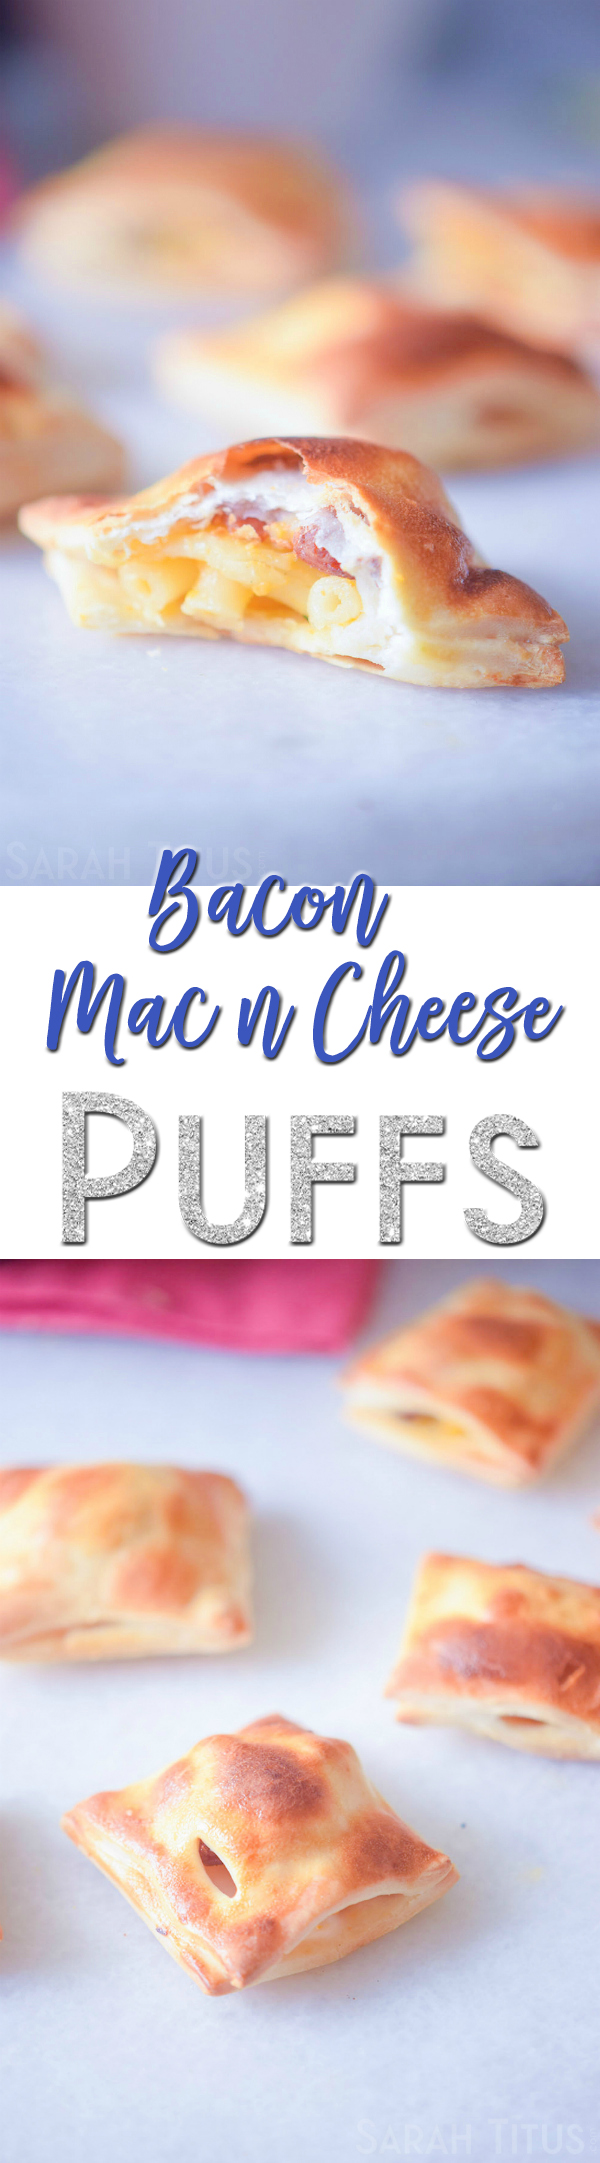 Few foods pack as much tasty goodness into one bit the way these Bacon Mac and Cheese Puffs do. These would make a fun snack for your kids or that next get-together!